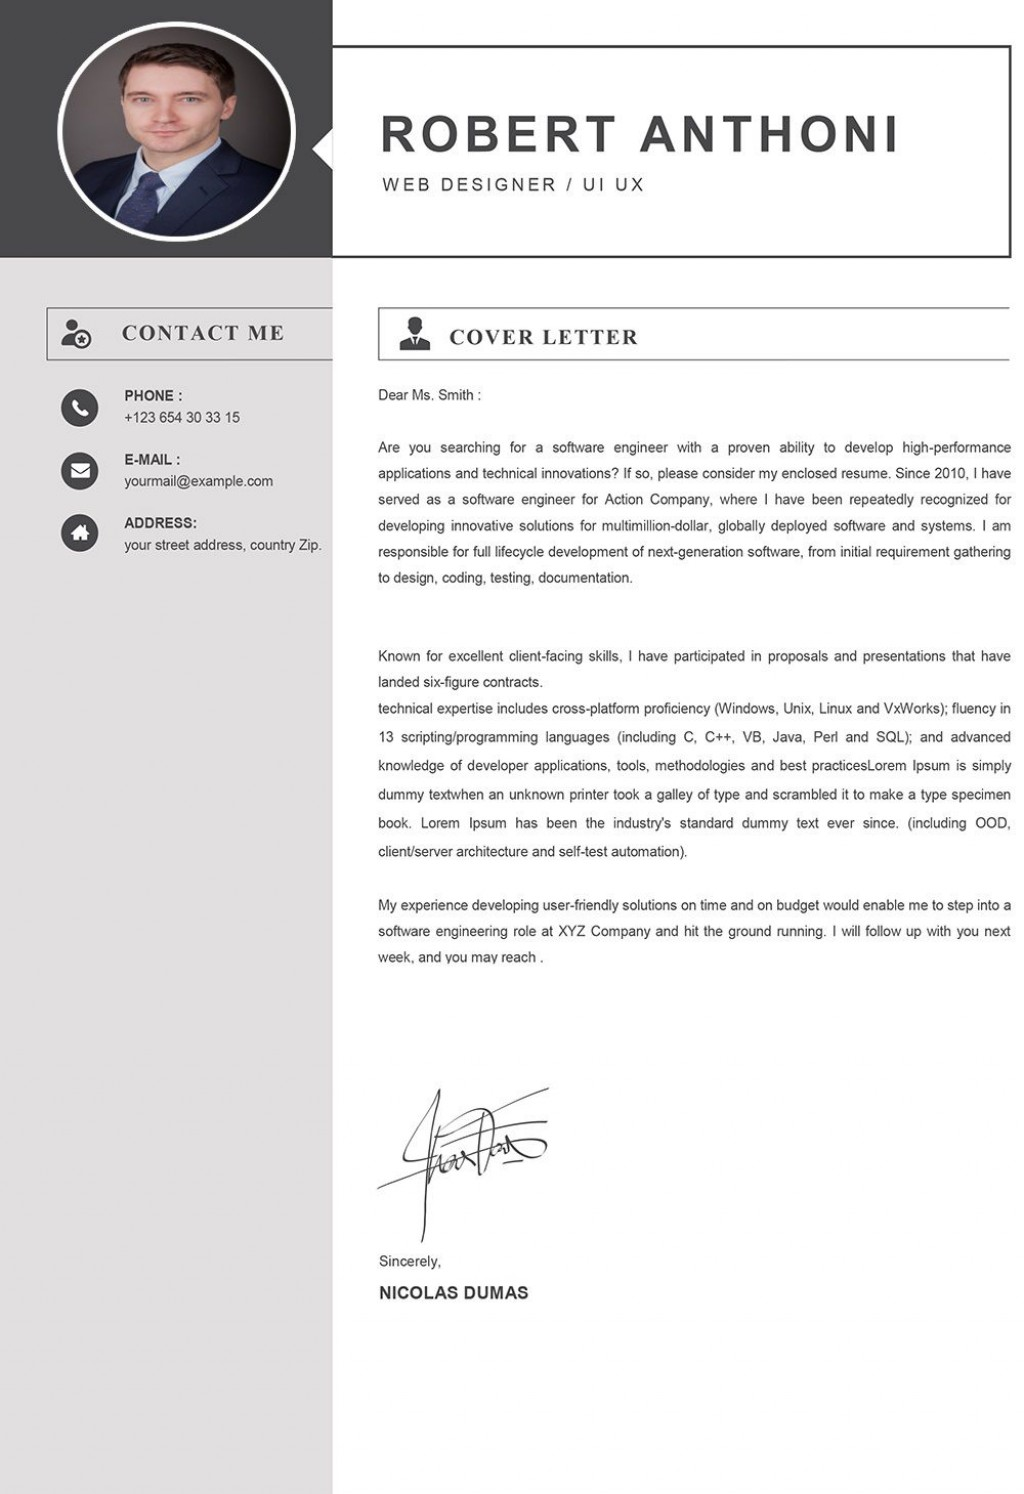 003 Simple Window Resume Cover Letter Template High Resolution  TemplatesLarge